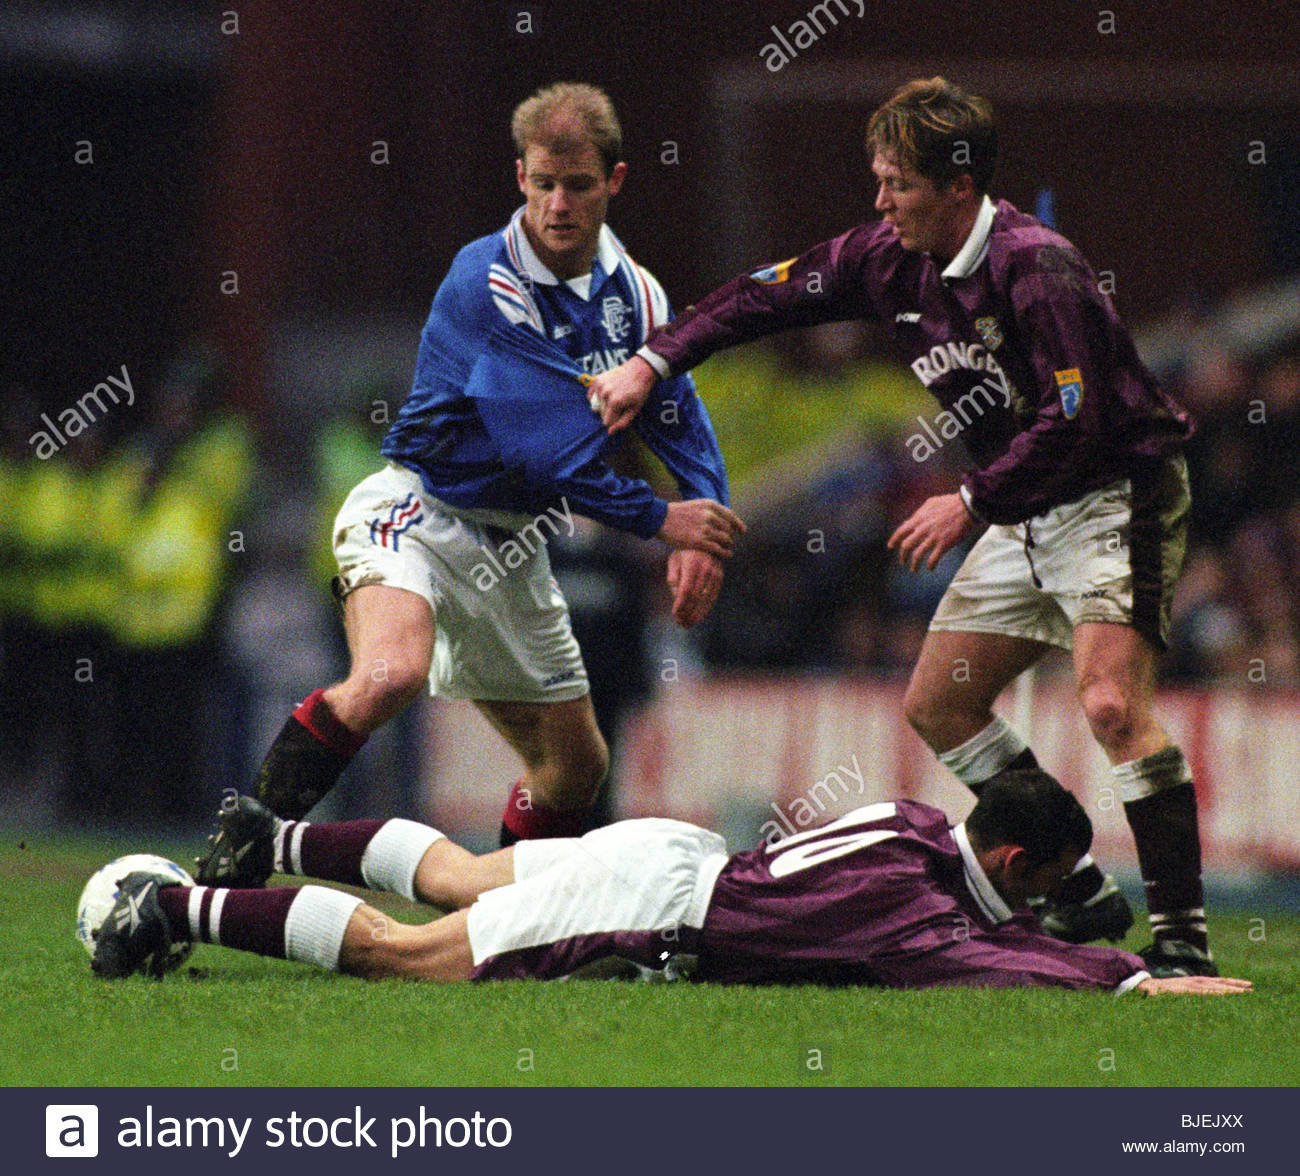 01/02/97 BELL'S PREMIER DIVISION RANGERS V HEARTS (0-0) IBROX - GLASGOW Gordon Durie (left) is challenged by - Stock Image